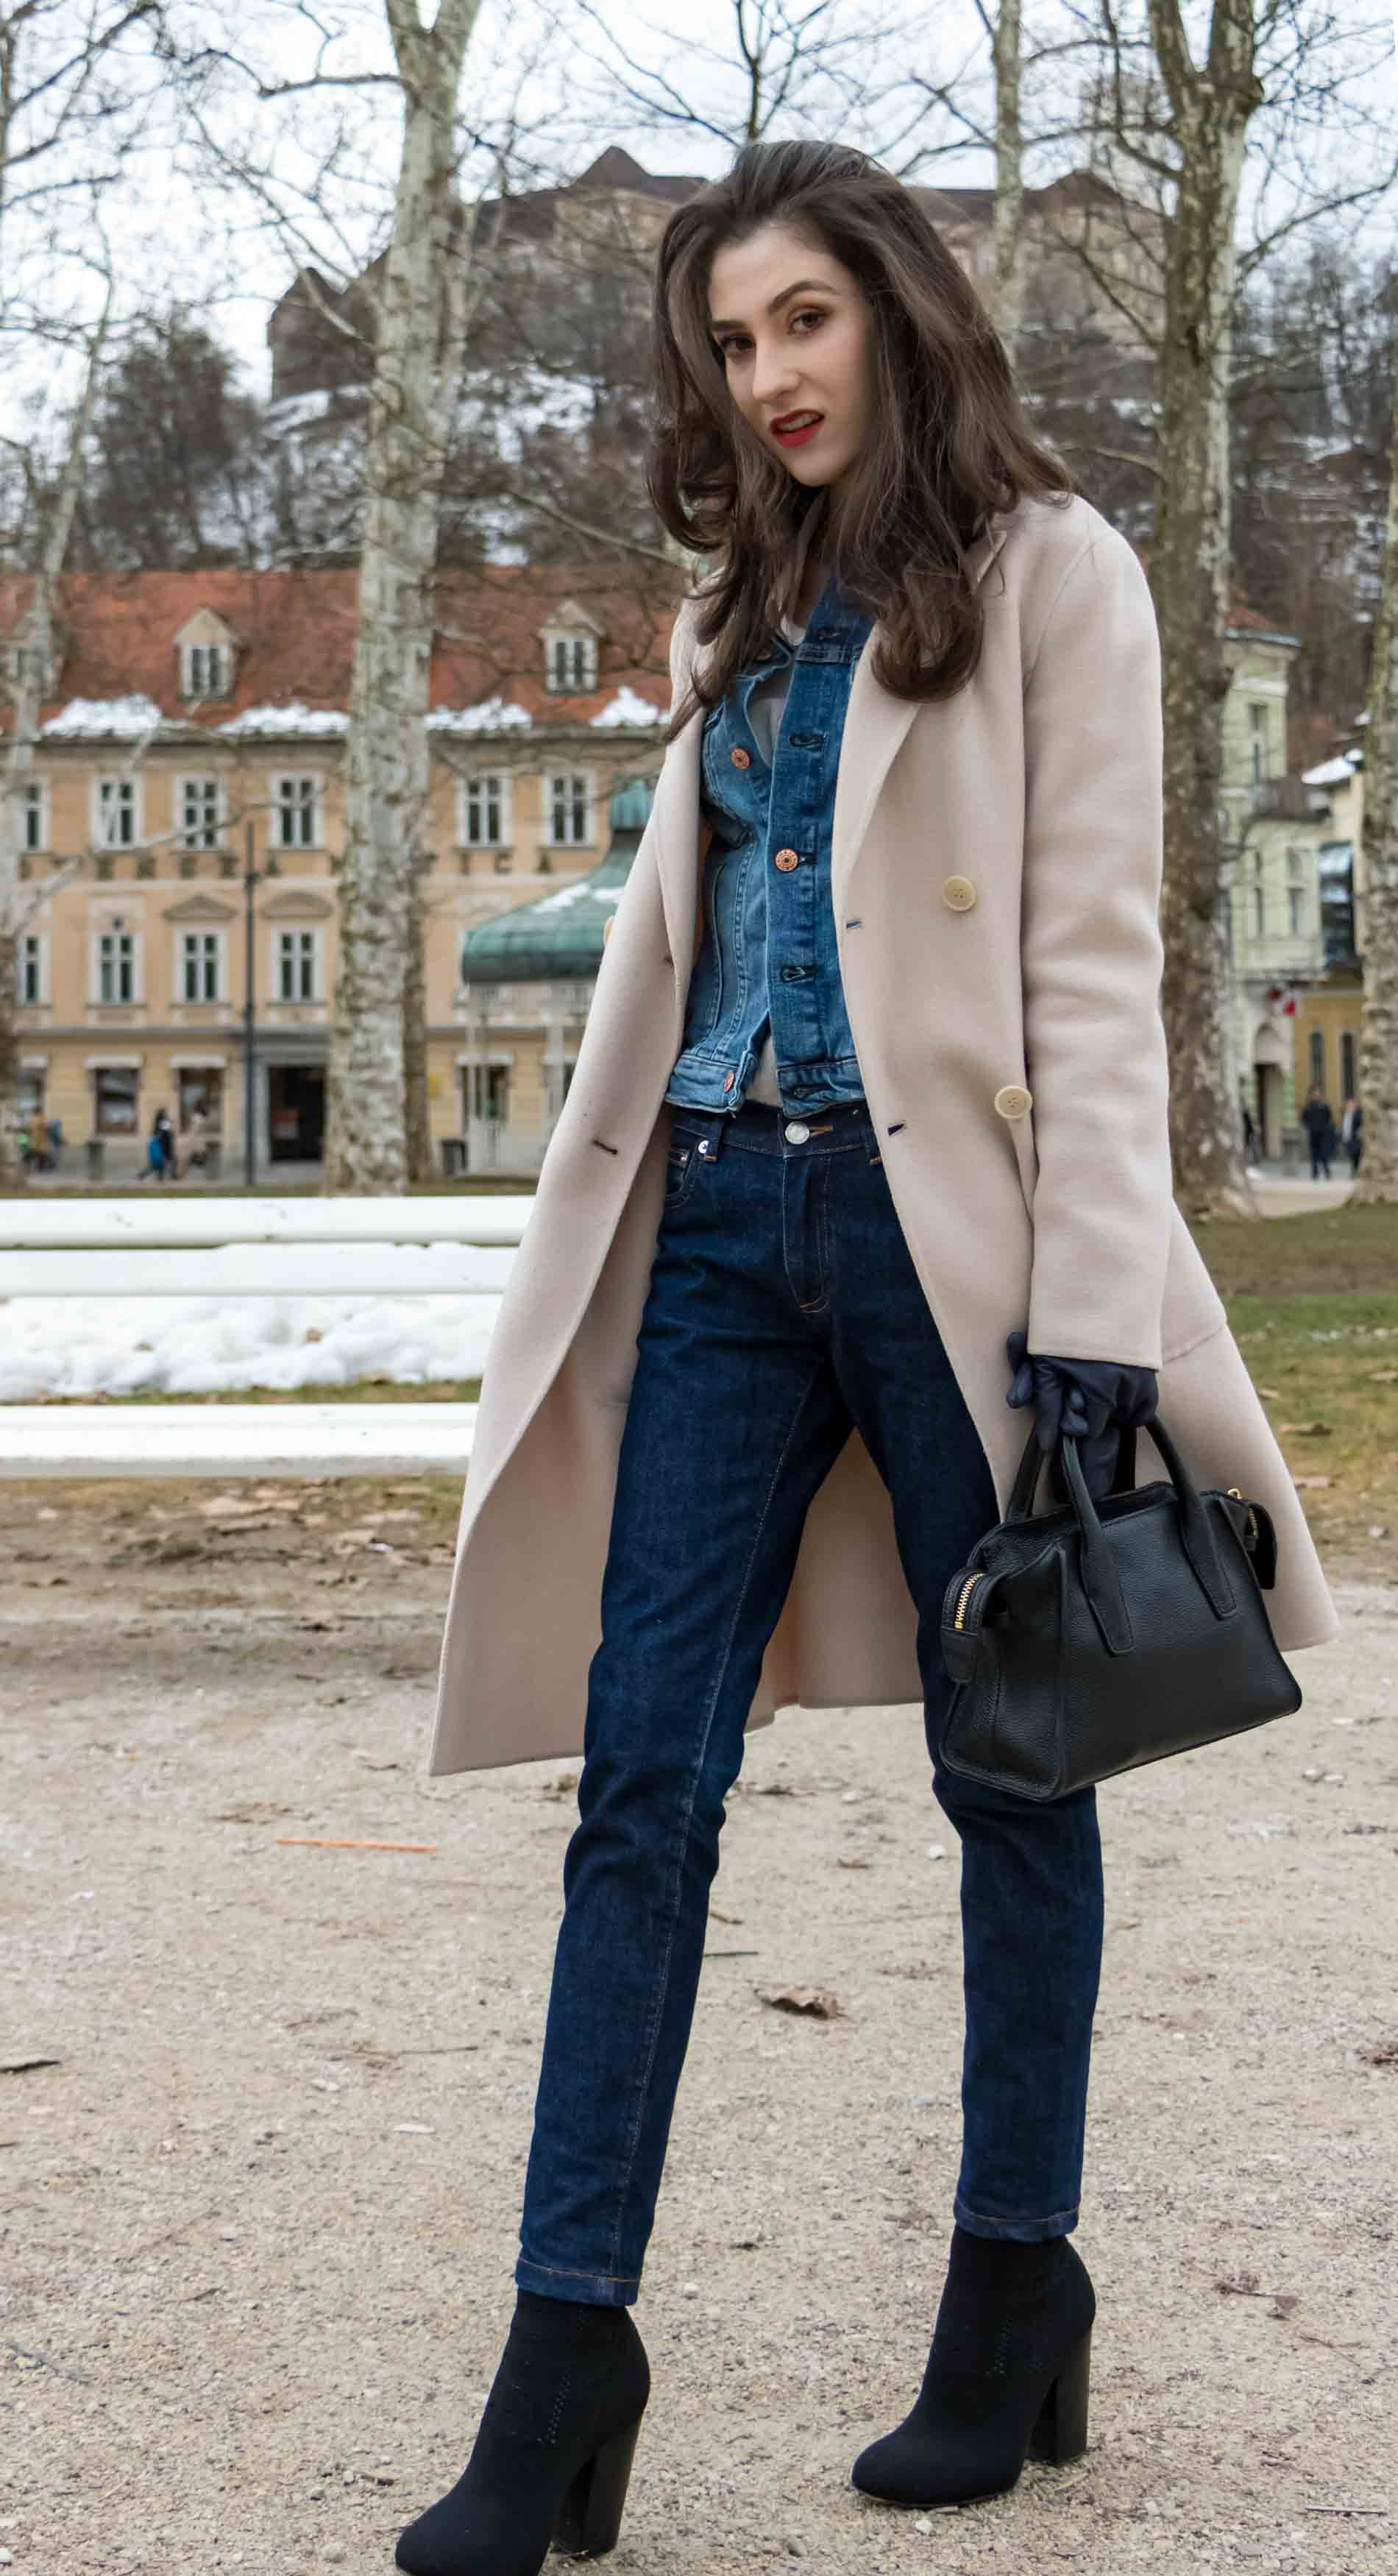 Fashion Blogger Veronika Lipar of Brunette from Wall Street wearing chic casual denim on denim trend, blue cropped denim jacket from H&M, with tapered straight-leg dark blue denim jeans from A.P.C., pastel pink, off-white double breasted Weekend Maxmara coat, black top handle bag, blue leather gloves and black sock ankle boots from Elena Iachi on the last days of winter